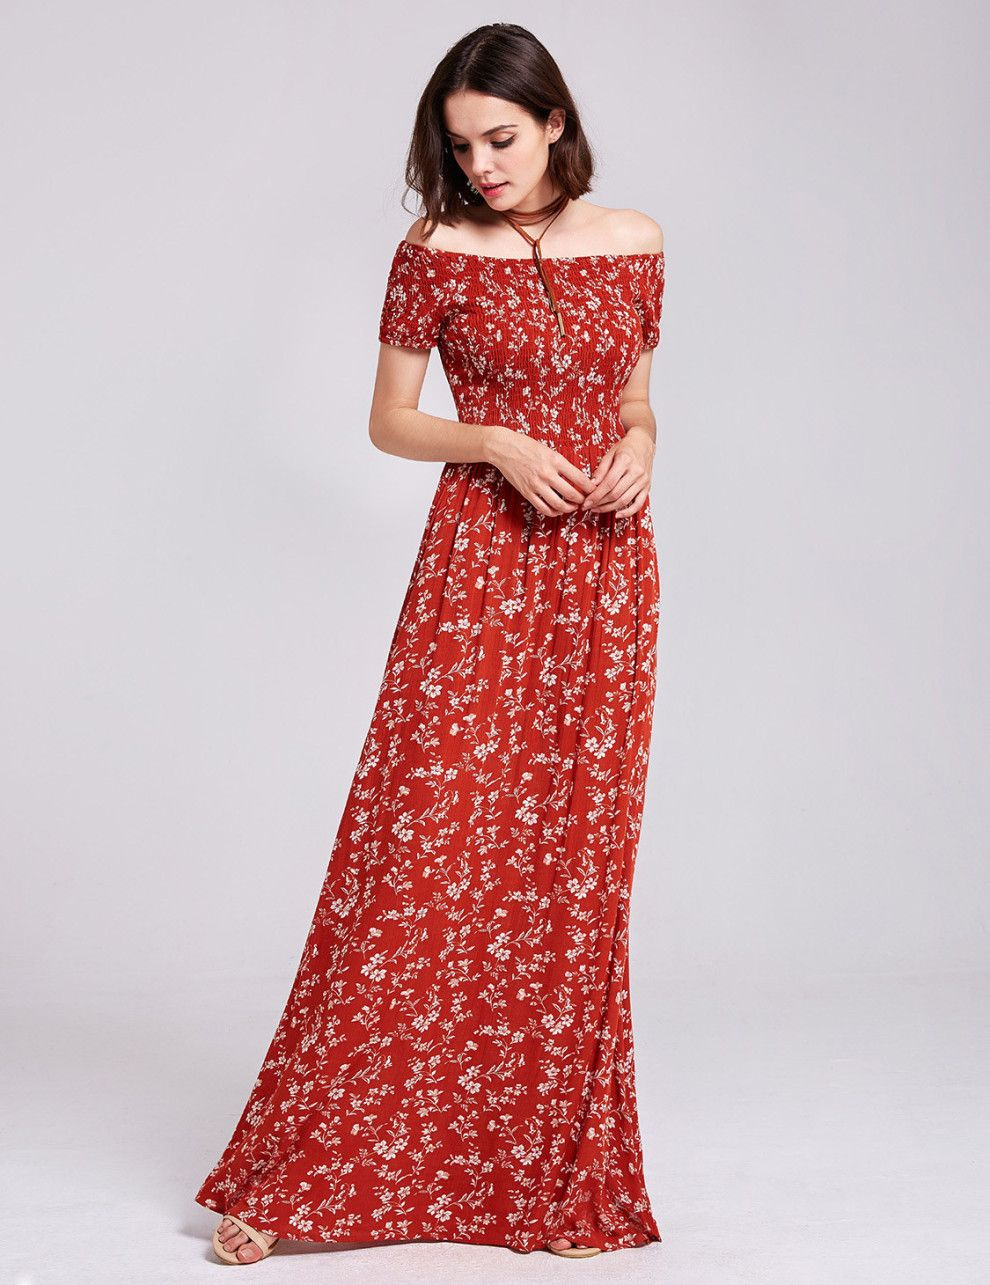 21 90s Style Finds From Walmart That Are All That And A Bag Of Chips Maxi Dress Sun Dress Casual Long Dress Casual [ 1285 x 990 Pixel ]